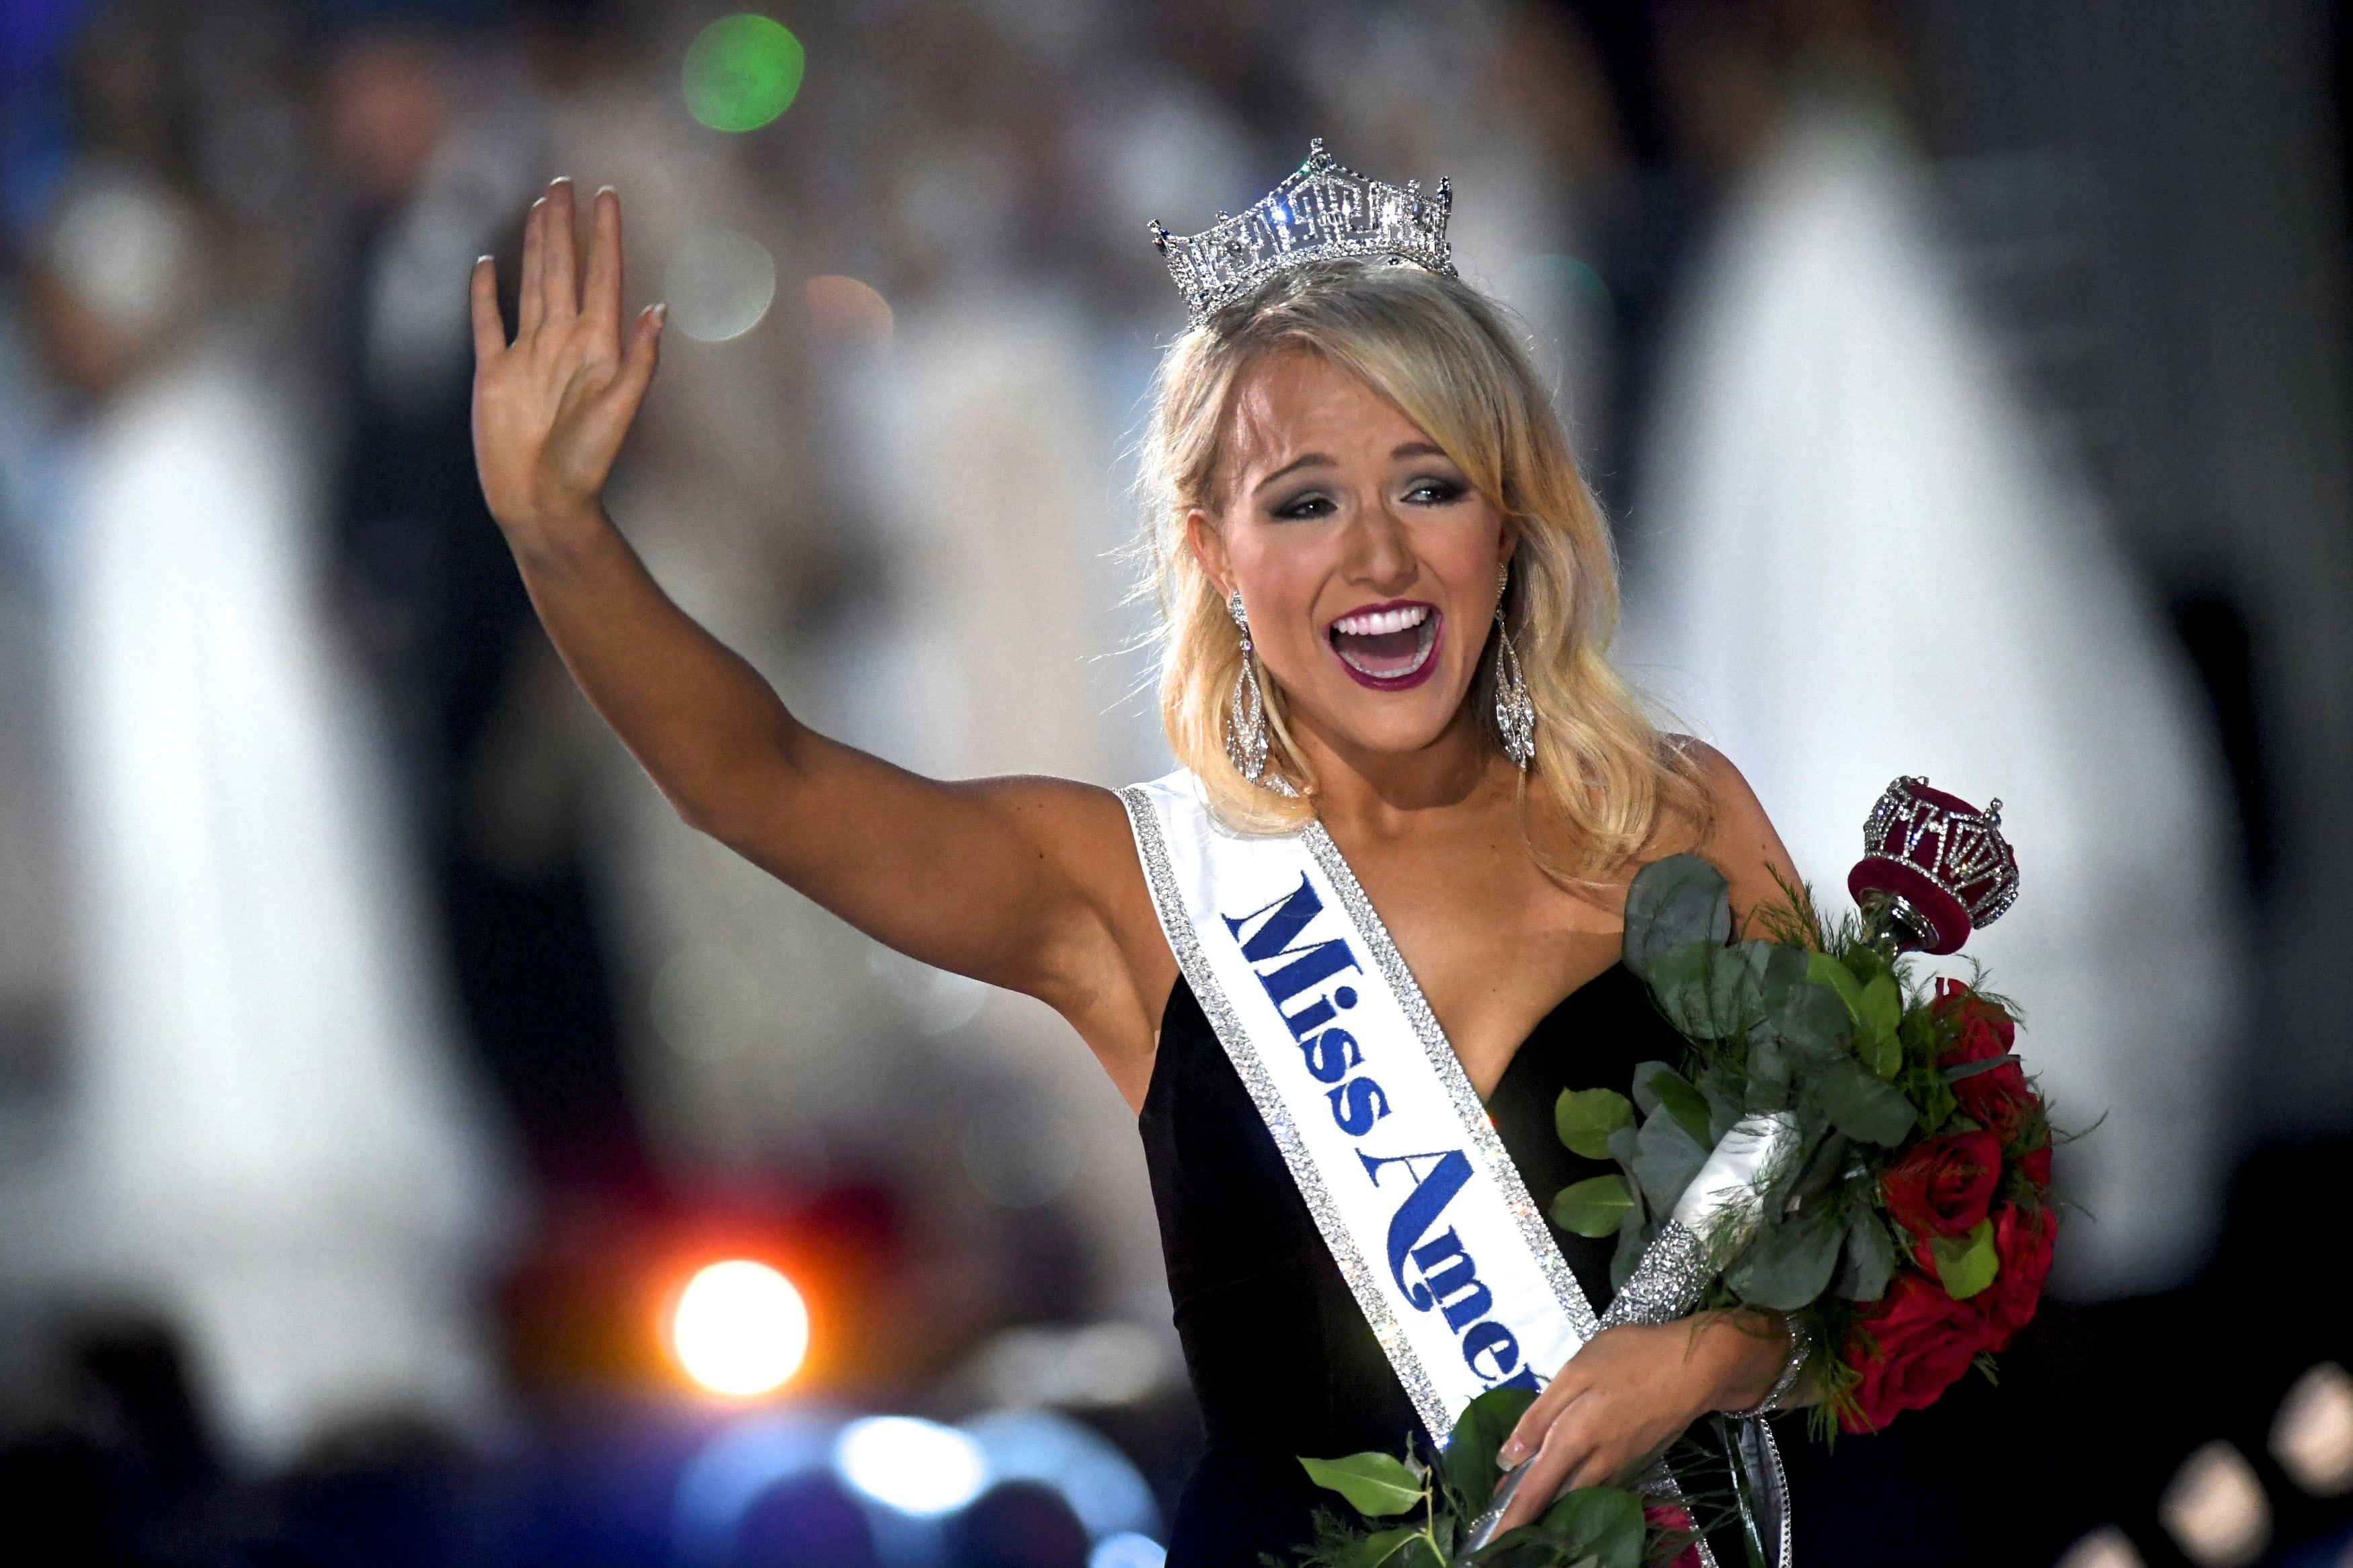 Miss Arkansas Savvy Shields, 21, reacts after winning the 96th Miss America Pageant inside Boardwalk Hall in Atlantic City, New Jersey September 11, 2016.  REUTERS/Mark Makela     TPX IMAGES OF THE DAY